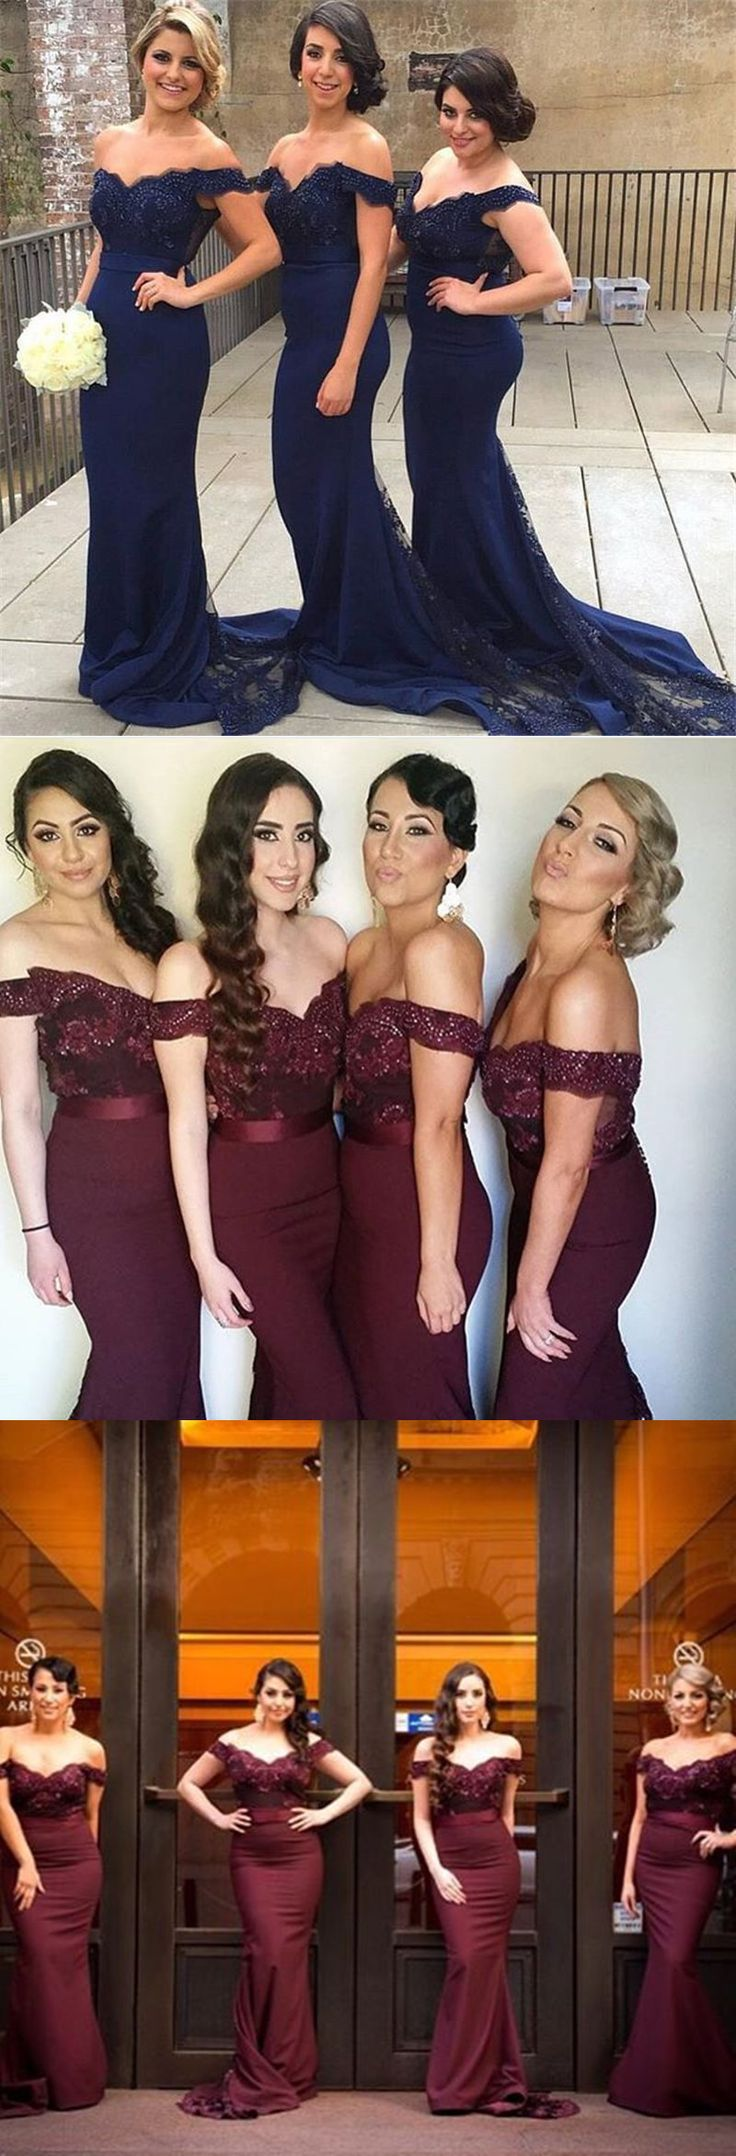 Navy Blue bridesmaid dress,Mermaid bridesmaid dress,Off shoulder lace bridesmaid dresses Burgundy bridesmaid dress long 2016